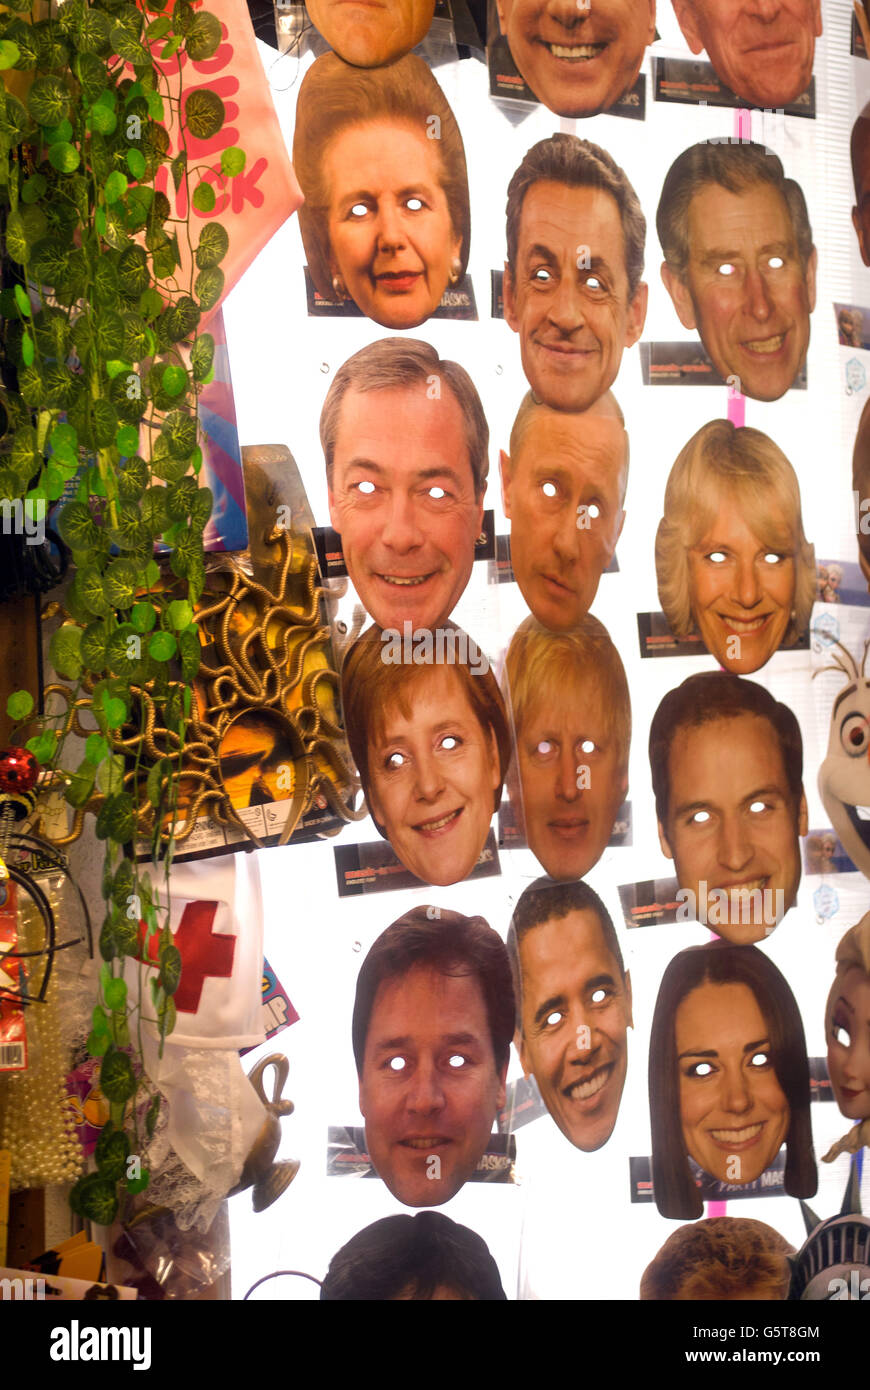 Joke shop masks of celebrities and politicians - Stock Image